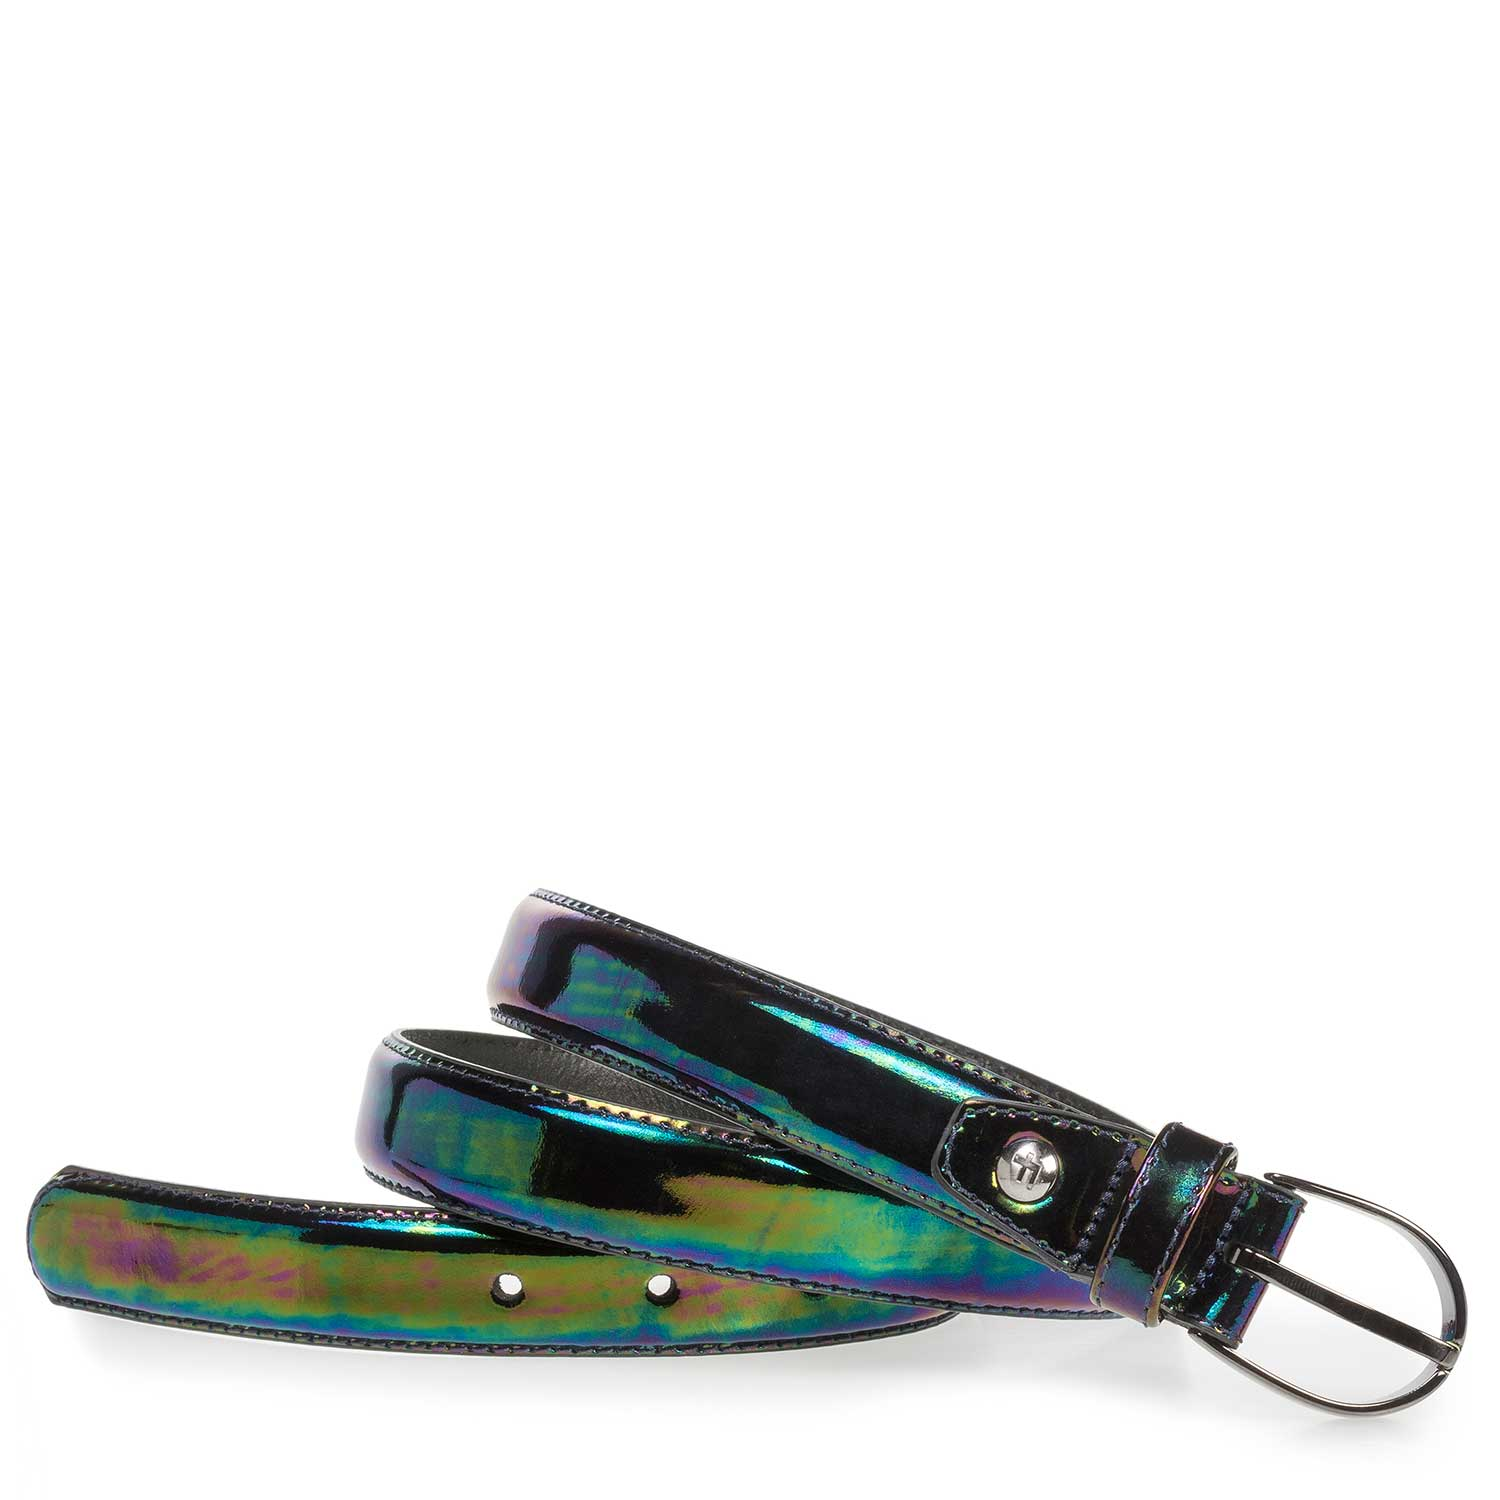 75813/51 - Multi-color metallic leren riem